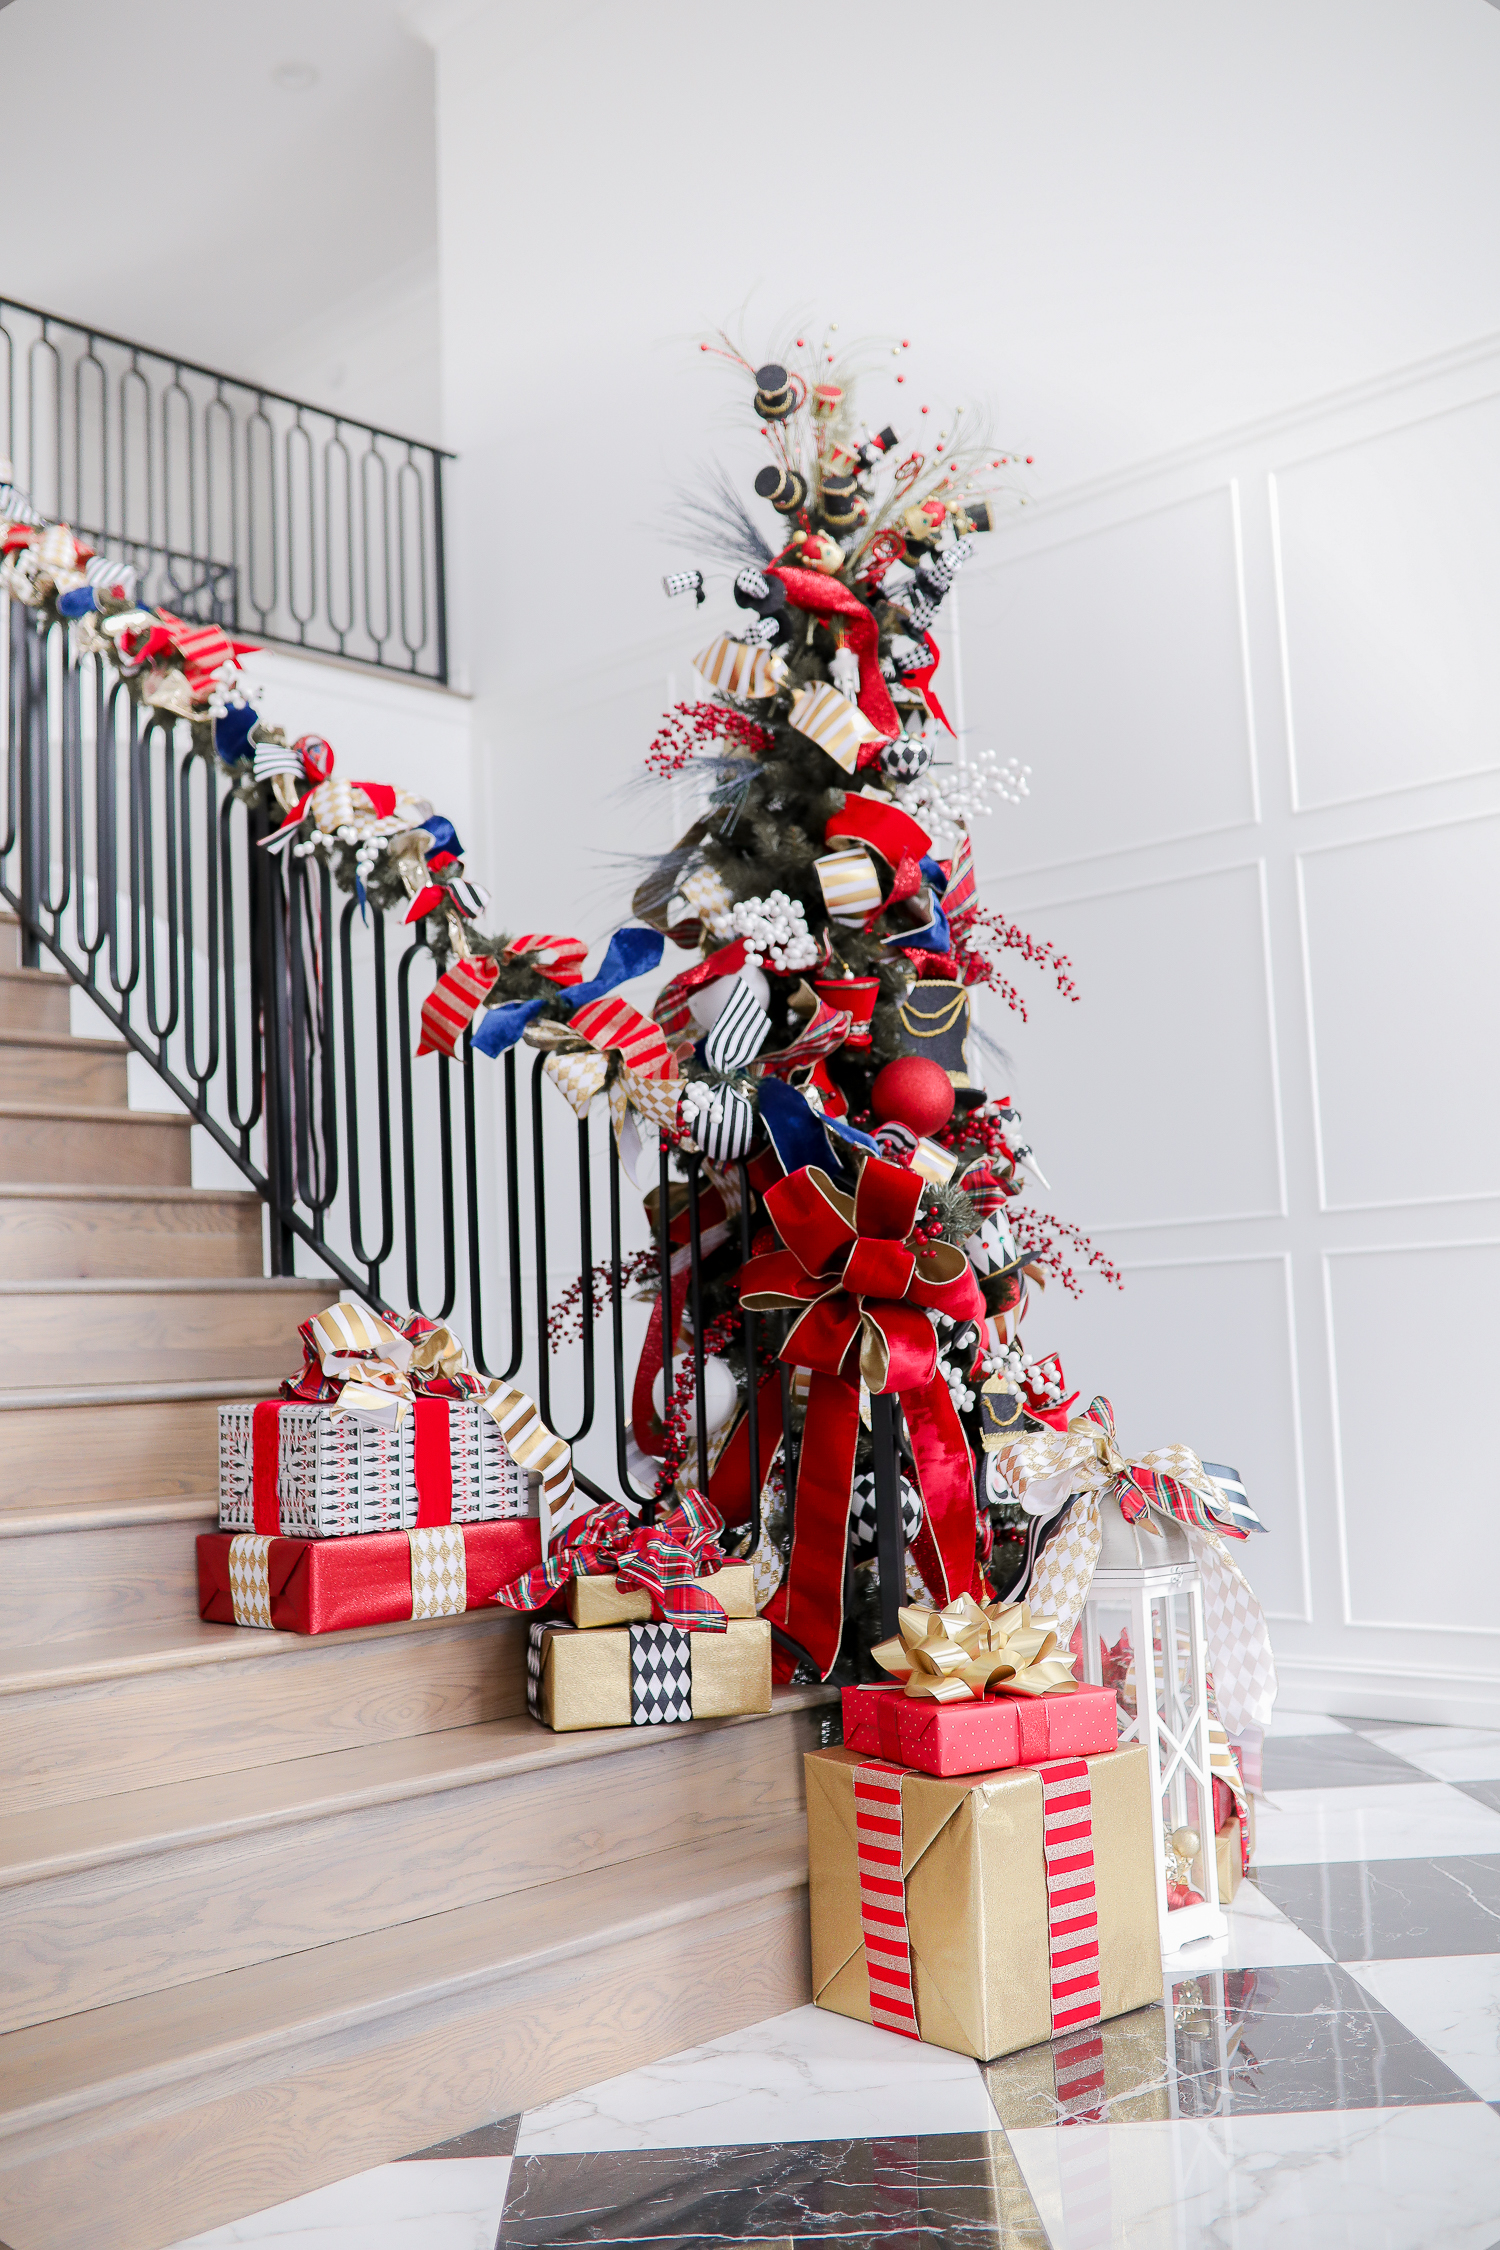 christmas tree inspiration, pinterest christmas tree inspiration 2019, gift ideas gift guide 2019, wayf lace top, chanel black gold belt, best christmas tree home decor, black loubtouin booties-2 | FAVORITE GIFT IDEAS FOR HER + MEGA GIVEAWAY [+Louis Vuitton Wallet] by popular Oklahoma life and style blog, The Sweetest Thing: image of a pile of presents on a staircase.